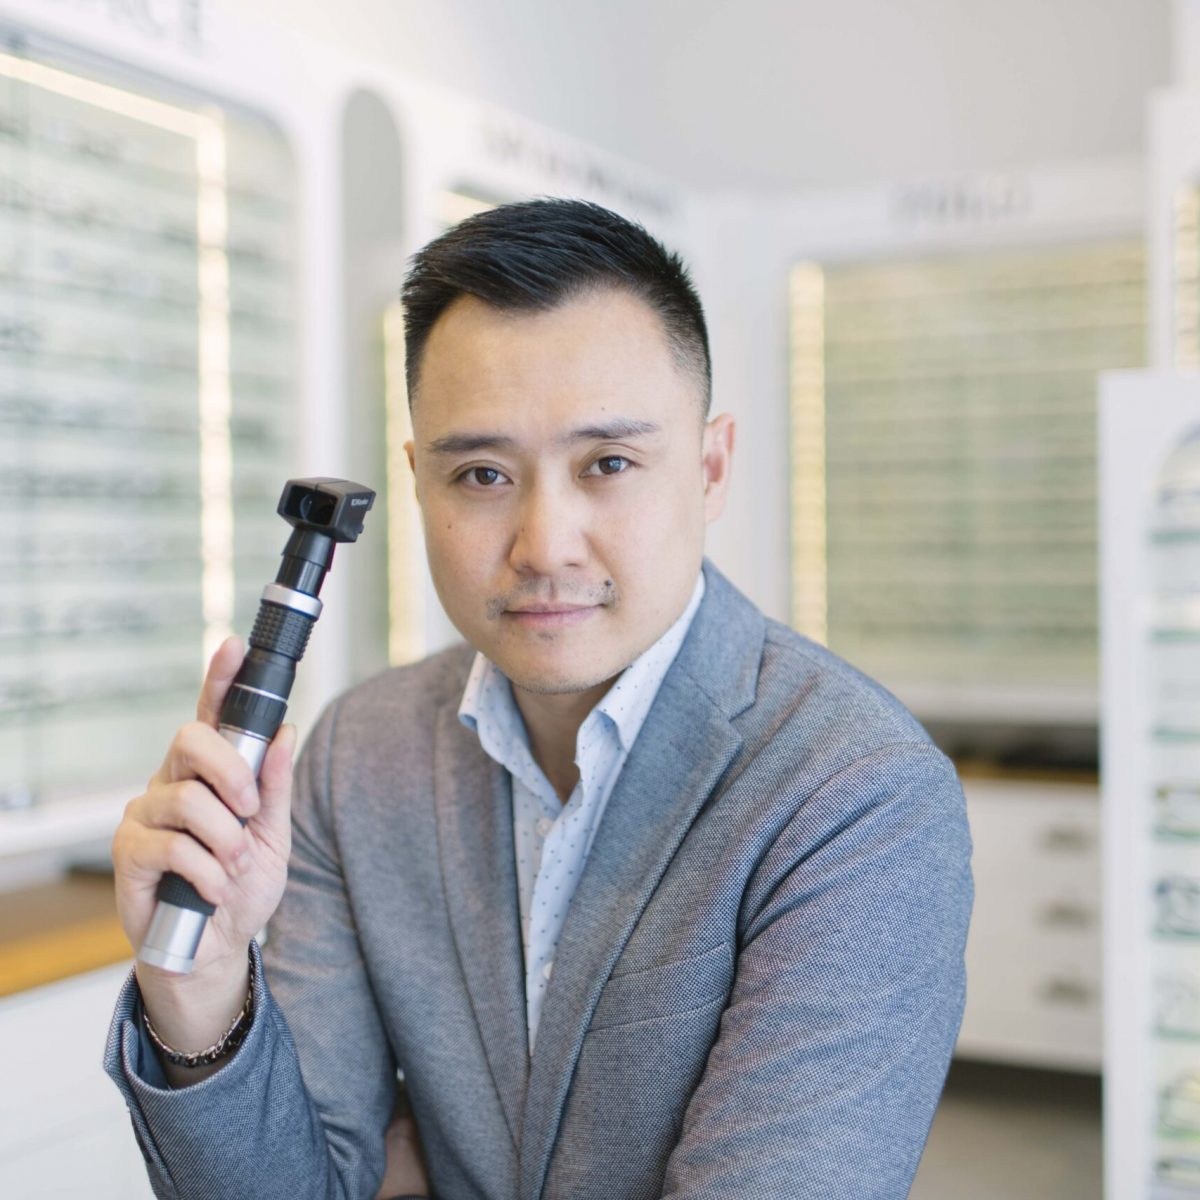 Dr. Peter Le optometrist holding a scope